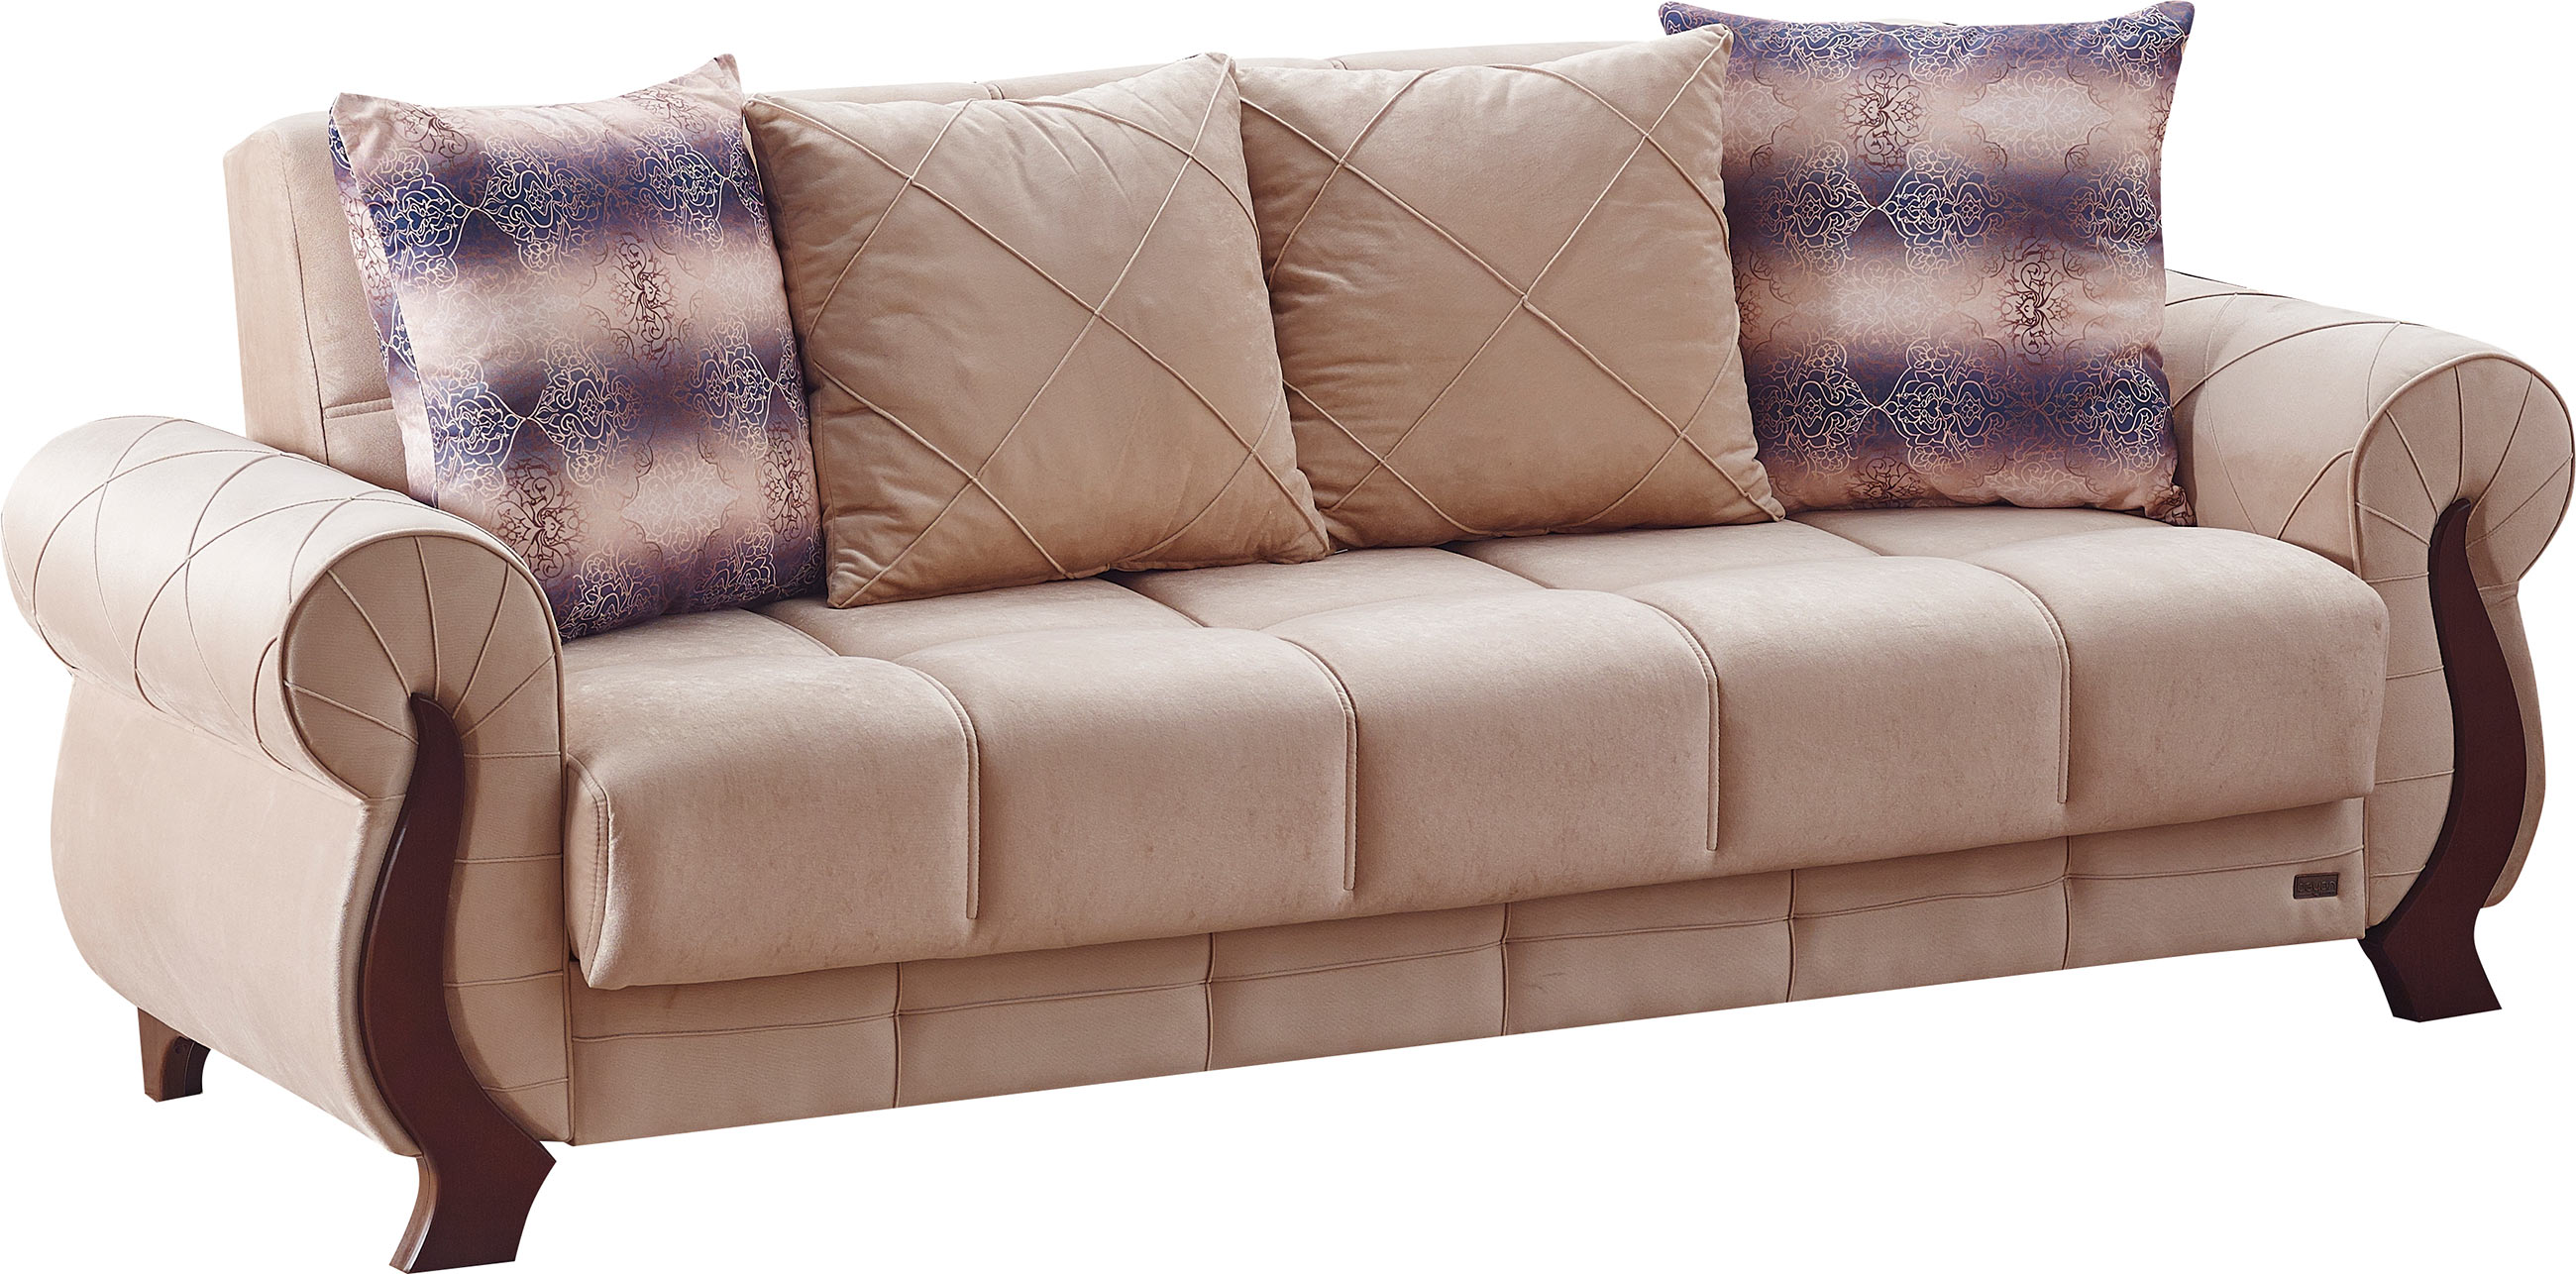 tario Beige Fabric Sofa Bed by Empire Furniture USA